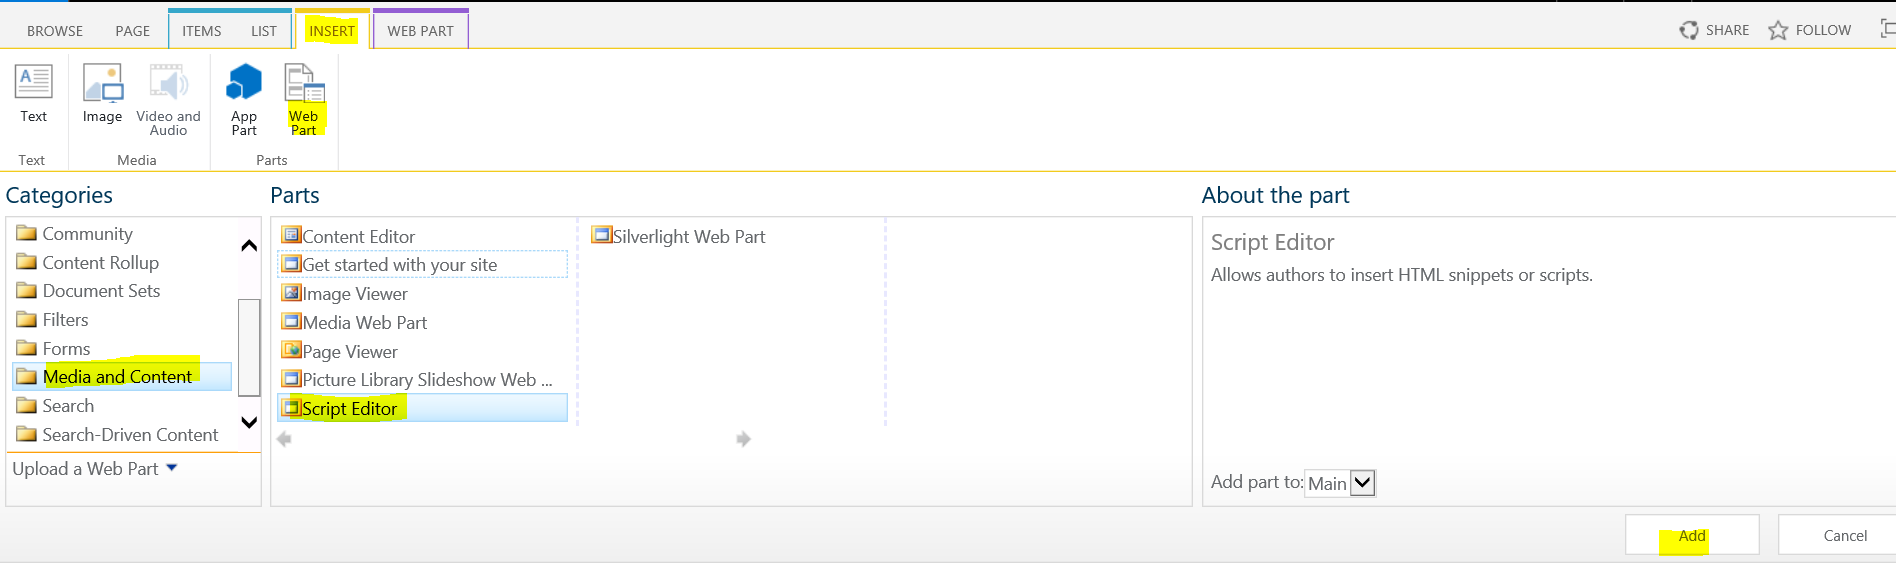 How to add script editor web part in the SharePoint page